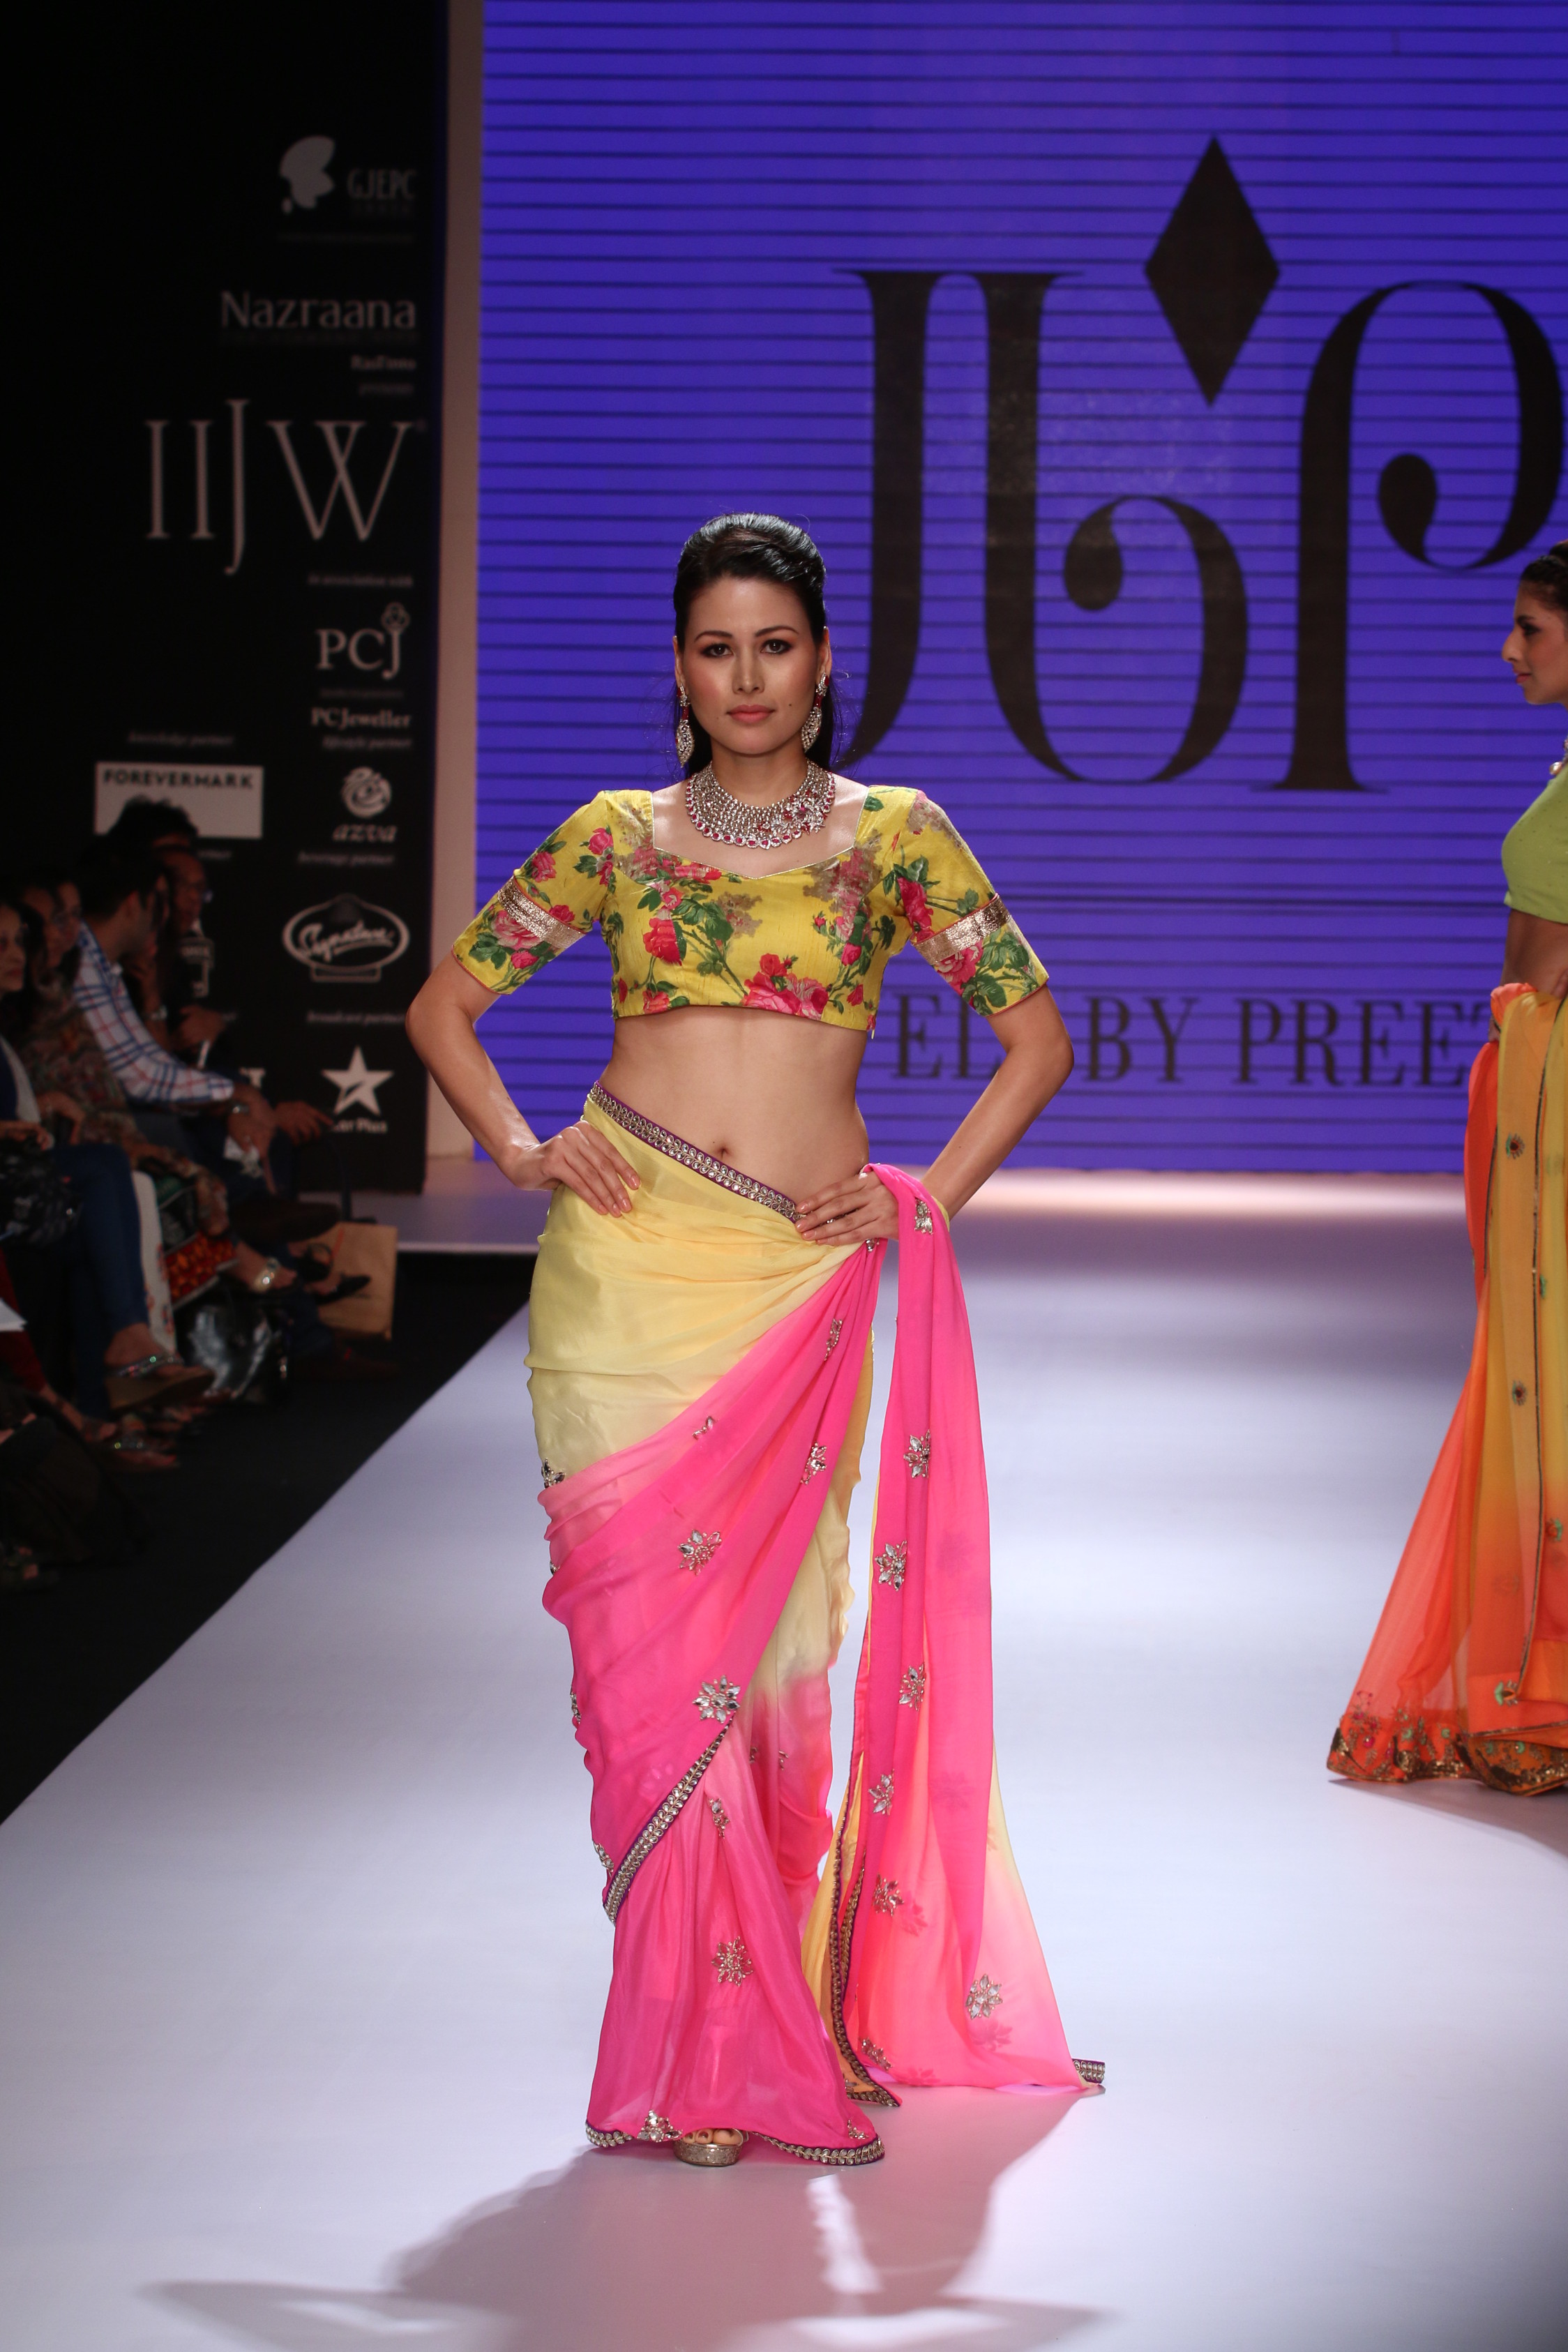 Seen at India International jewellery week - a model walking for Jewels by Preeti 2.JPG